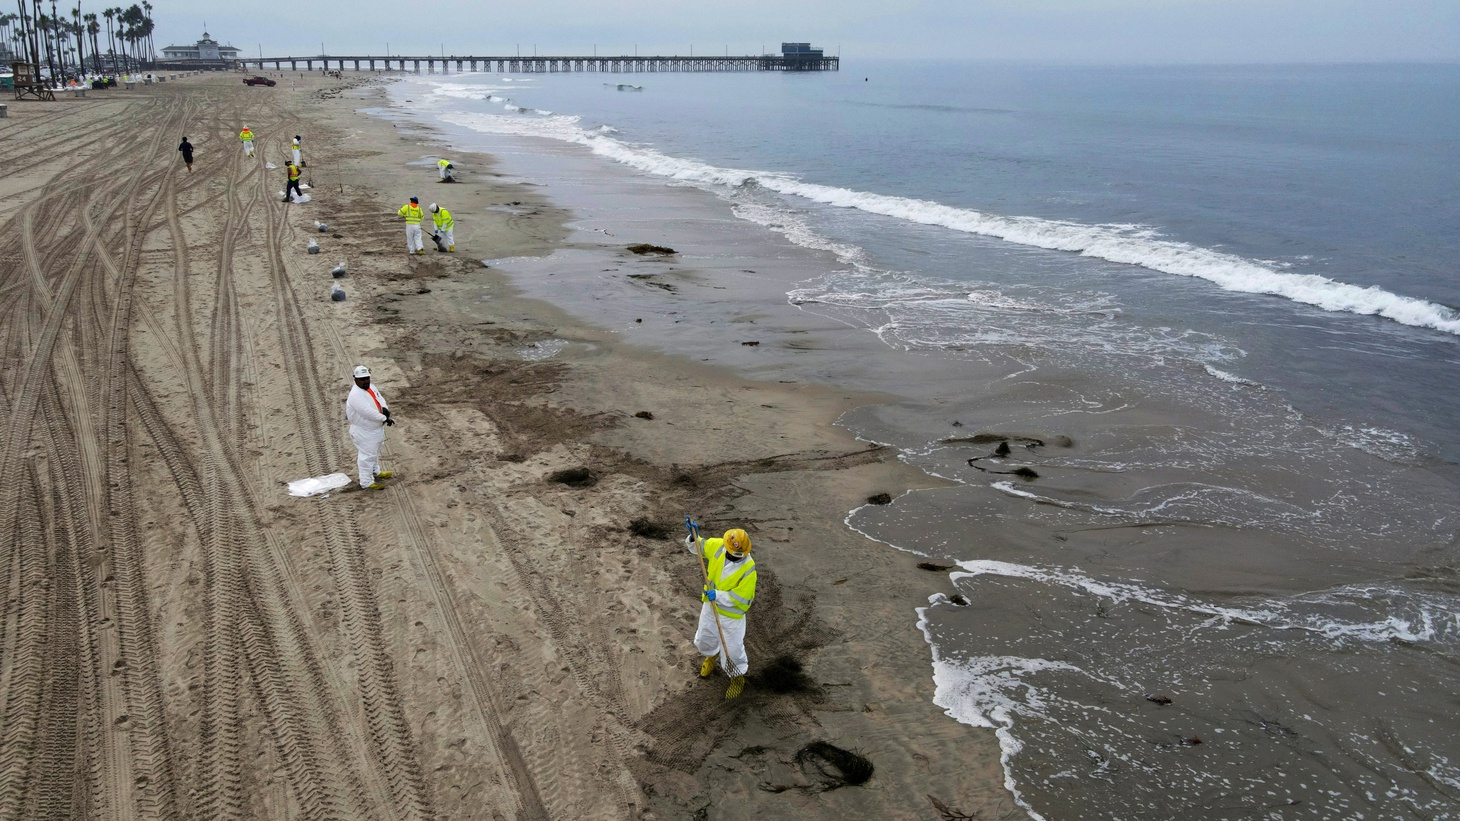 Workers rake up crude oil, after more than 3,000 barrels of crude oil leaked from a ruptured pipeline into the Pacific Ocean in Newport Beach, California, U.S., October 7, 2021. Picture taken with a drone.